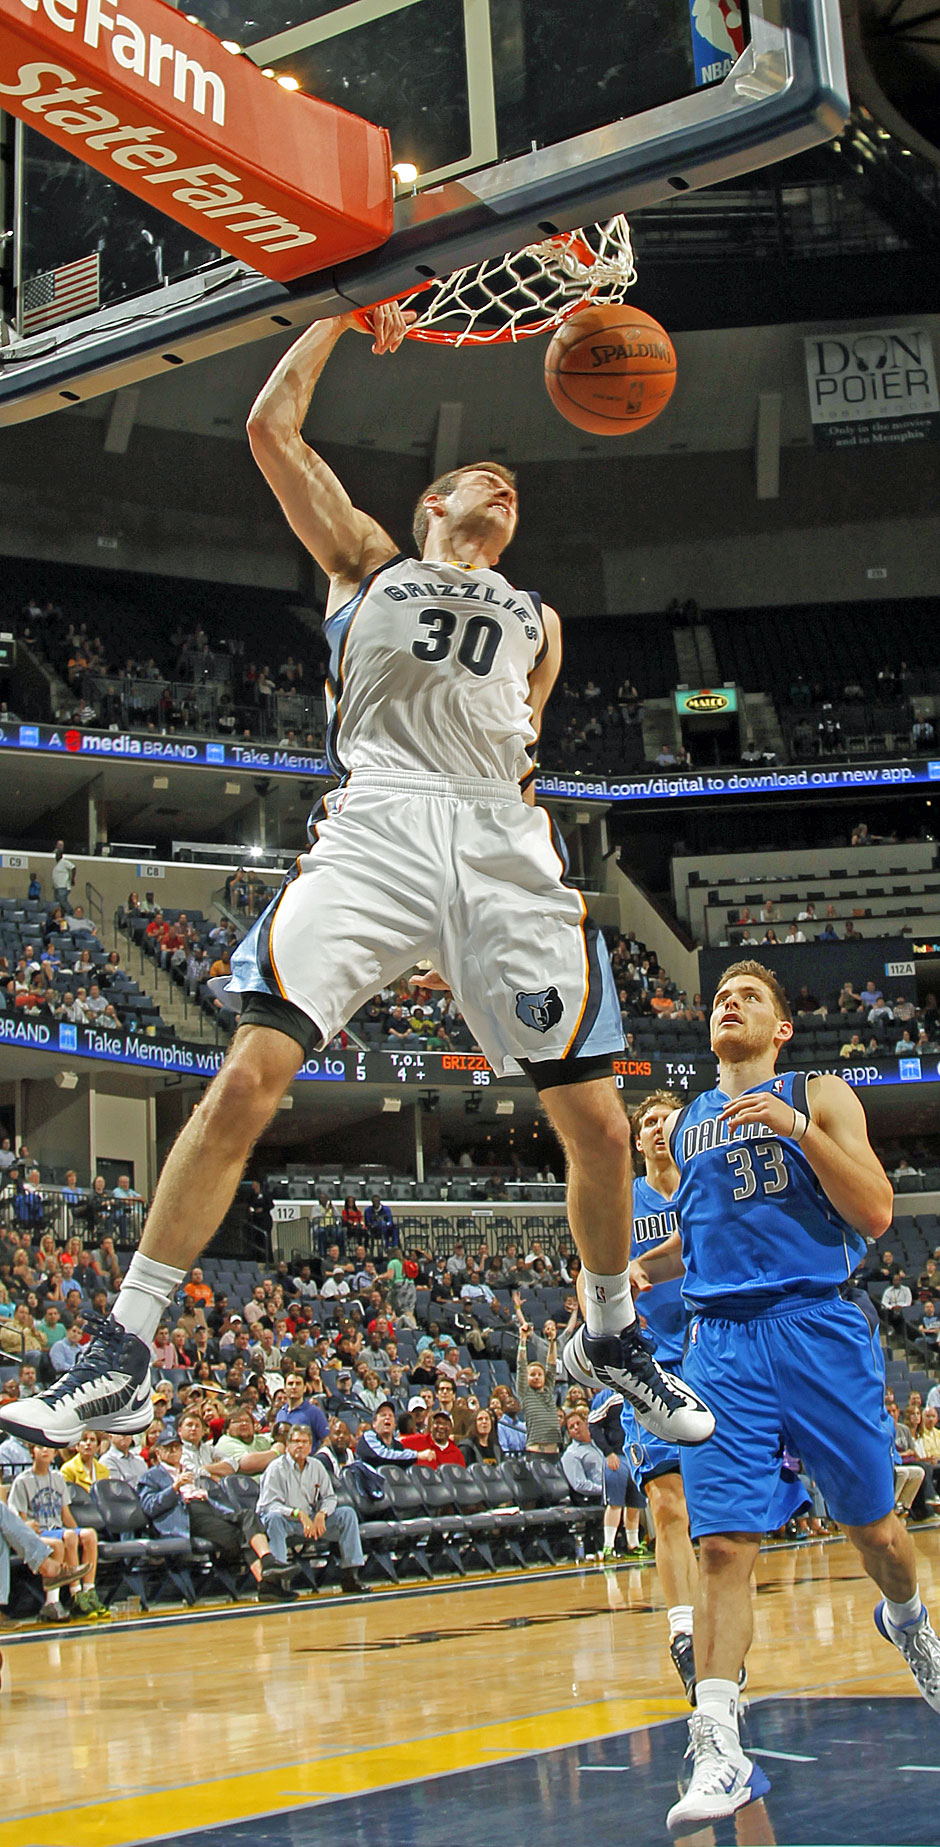 Bank: Jon Leuer (Power Forward, 8,7 Punkte, 4,2 Rebounds)